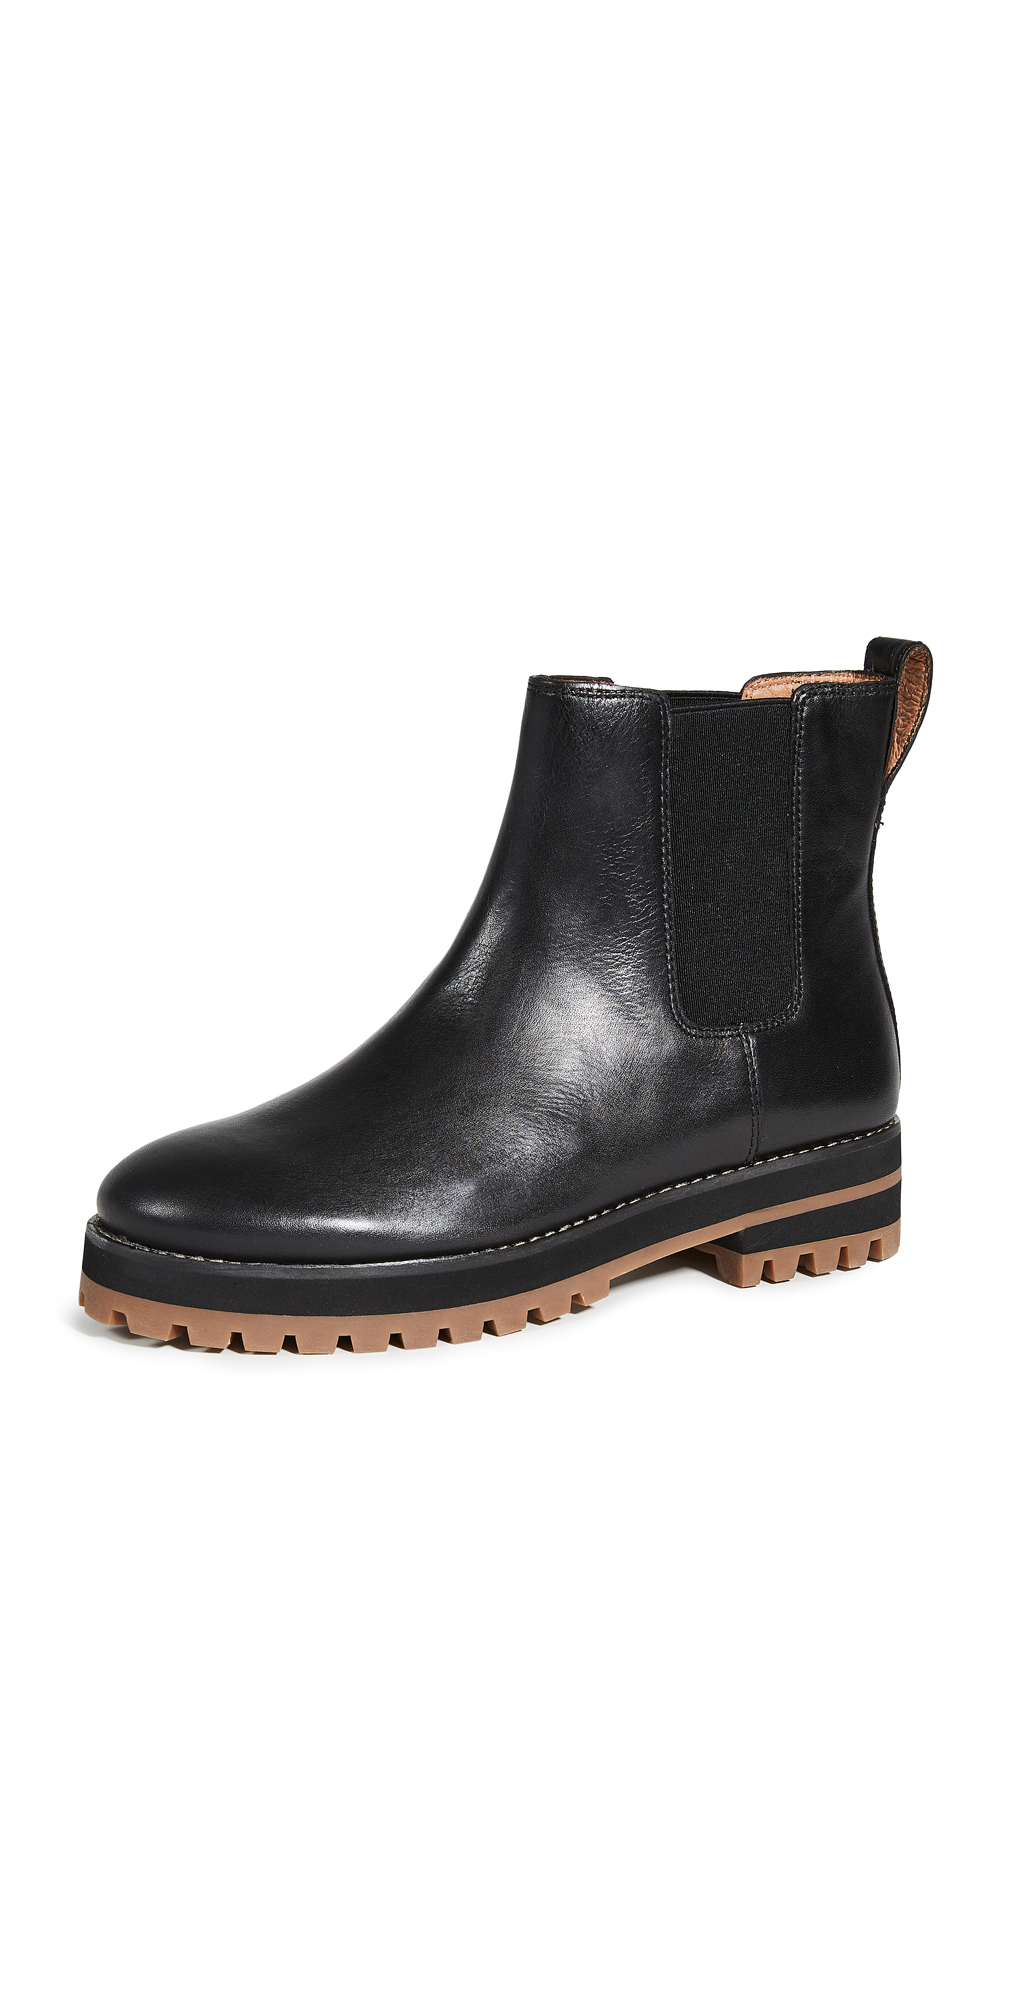 Madewell Andi Chelsea Boots